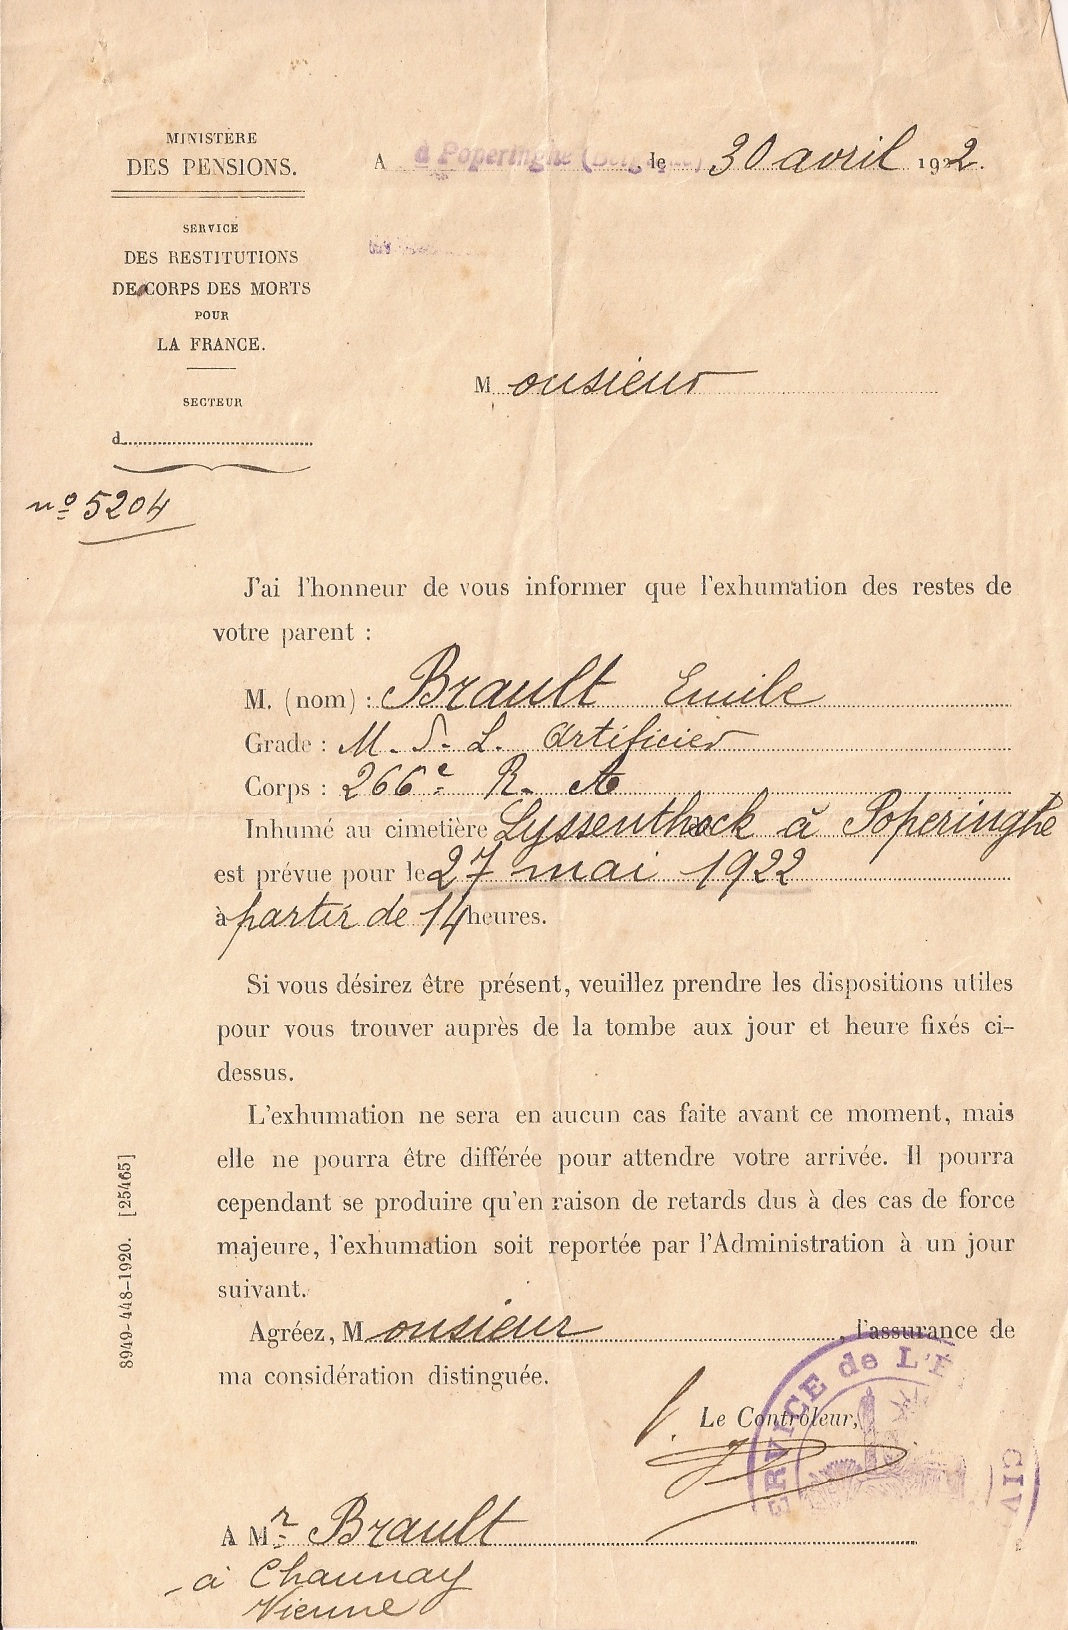 courrier pour exhumation 30 avril 1922